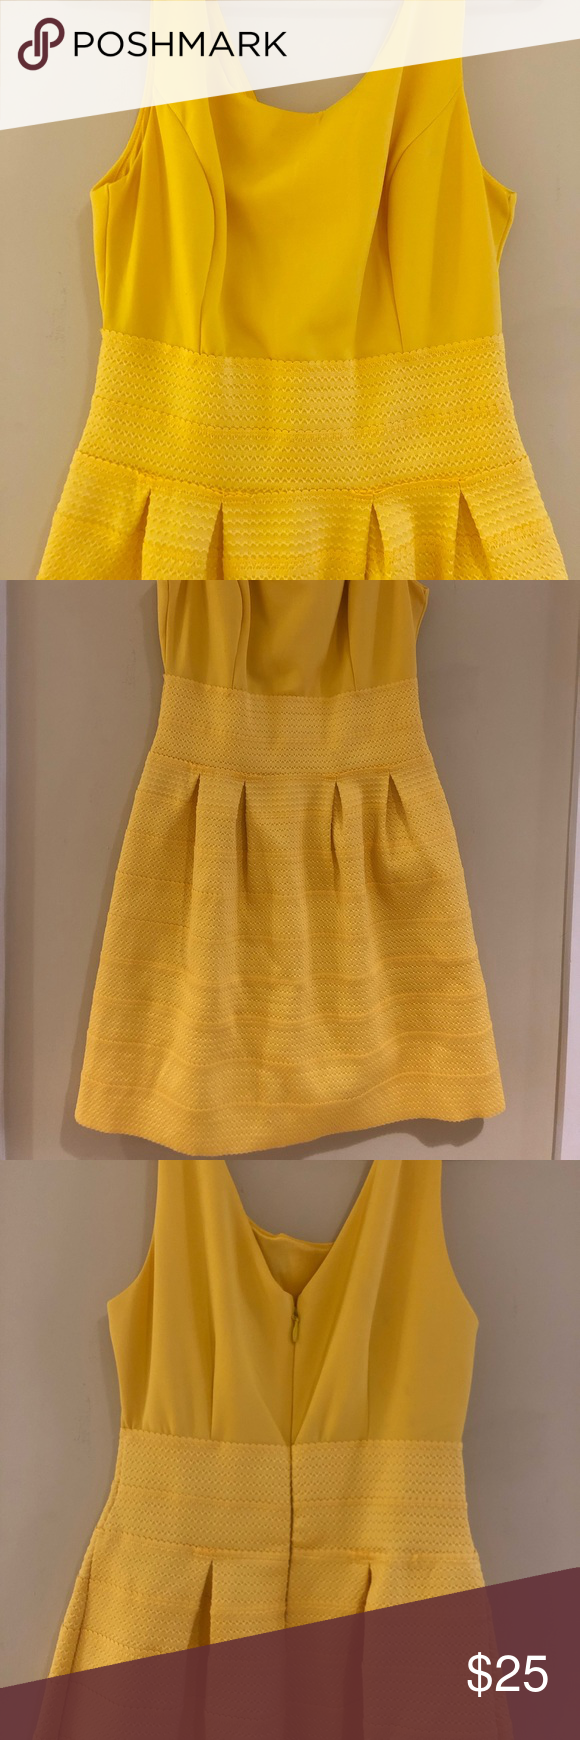 Yellow High Waisted Dress Two Textures Make Up This Wonderful Sunflower Yellow Dress The Top Is Stretchy And Flexible High Waist Dress Clothes Design Dresses [ 1740 x 580 Pixel ]